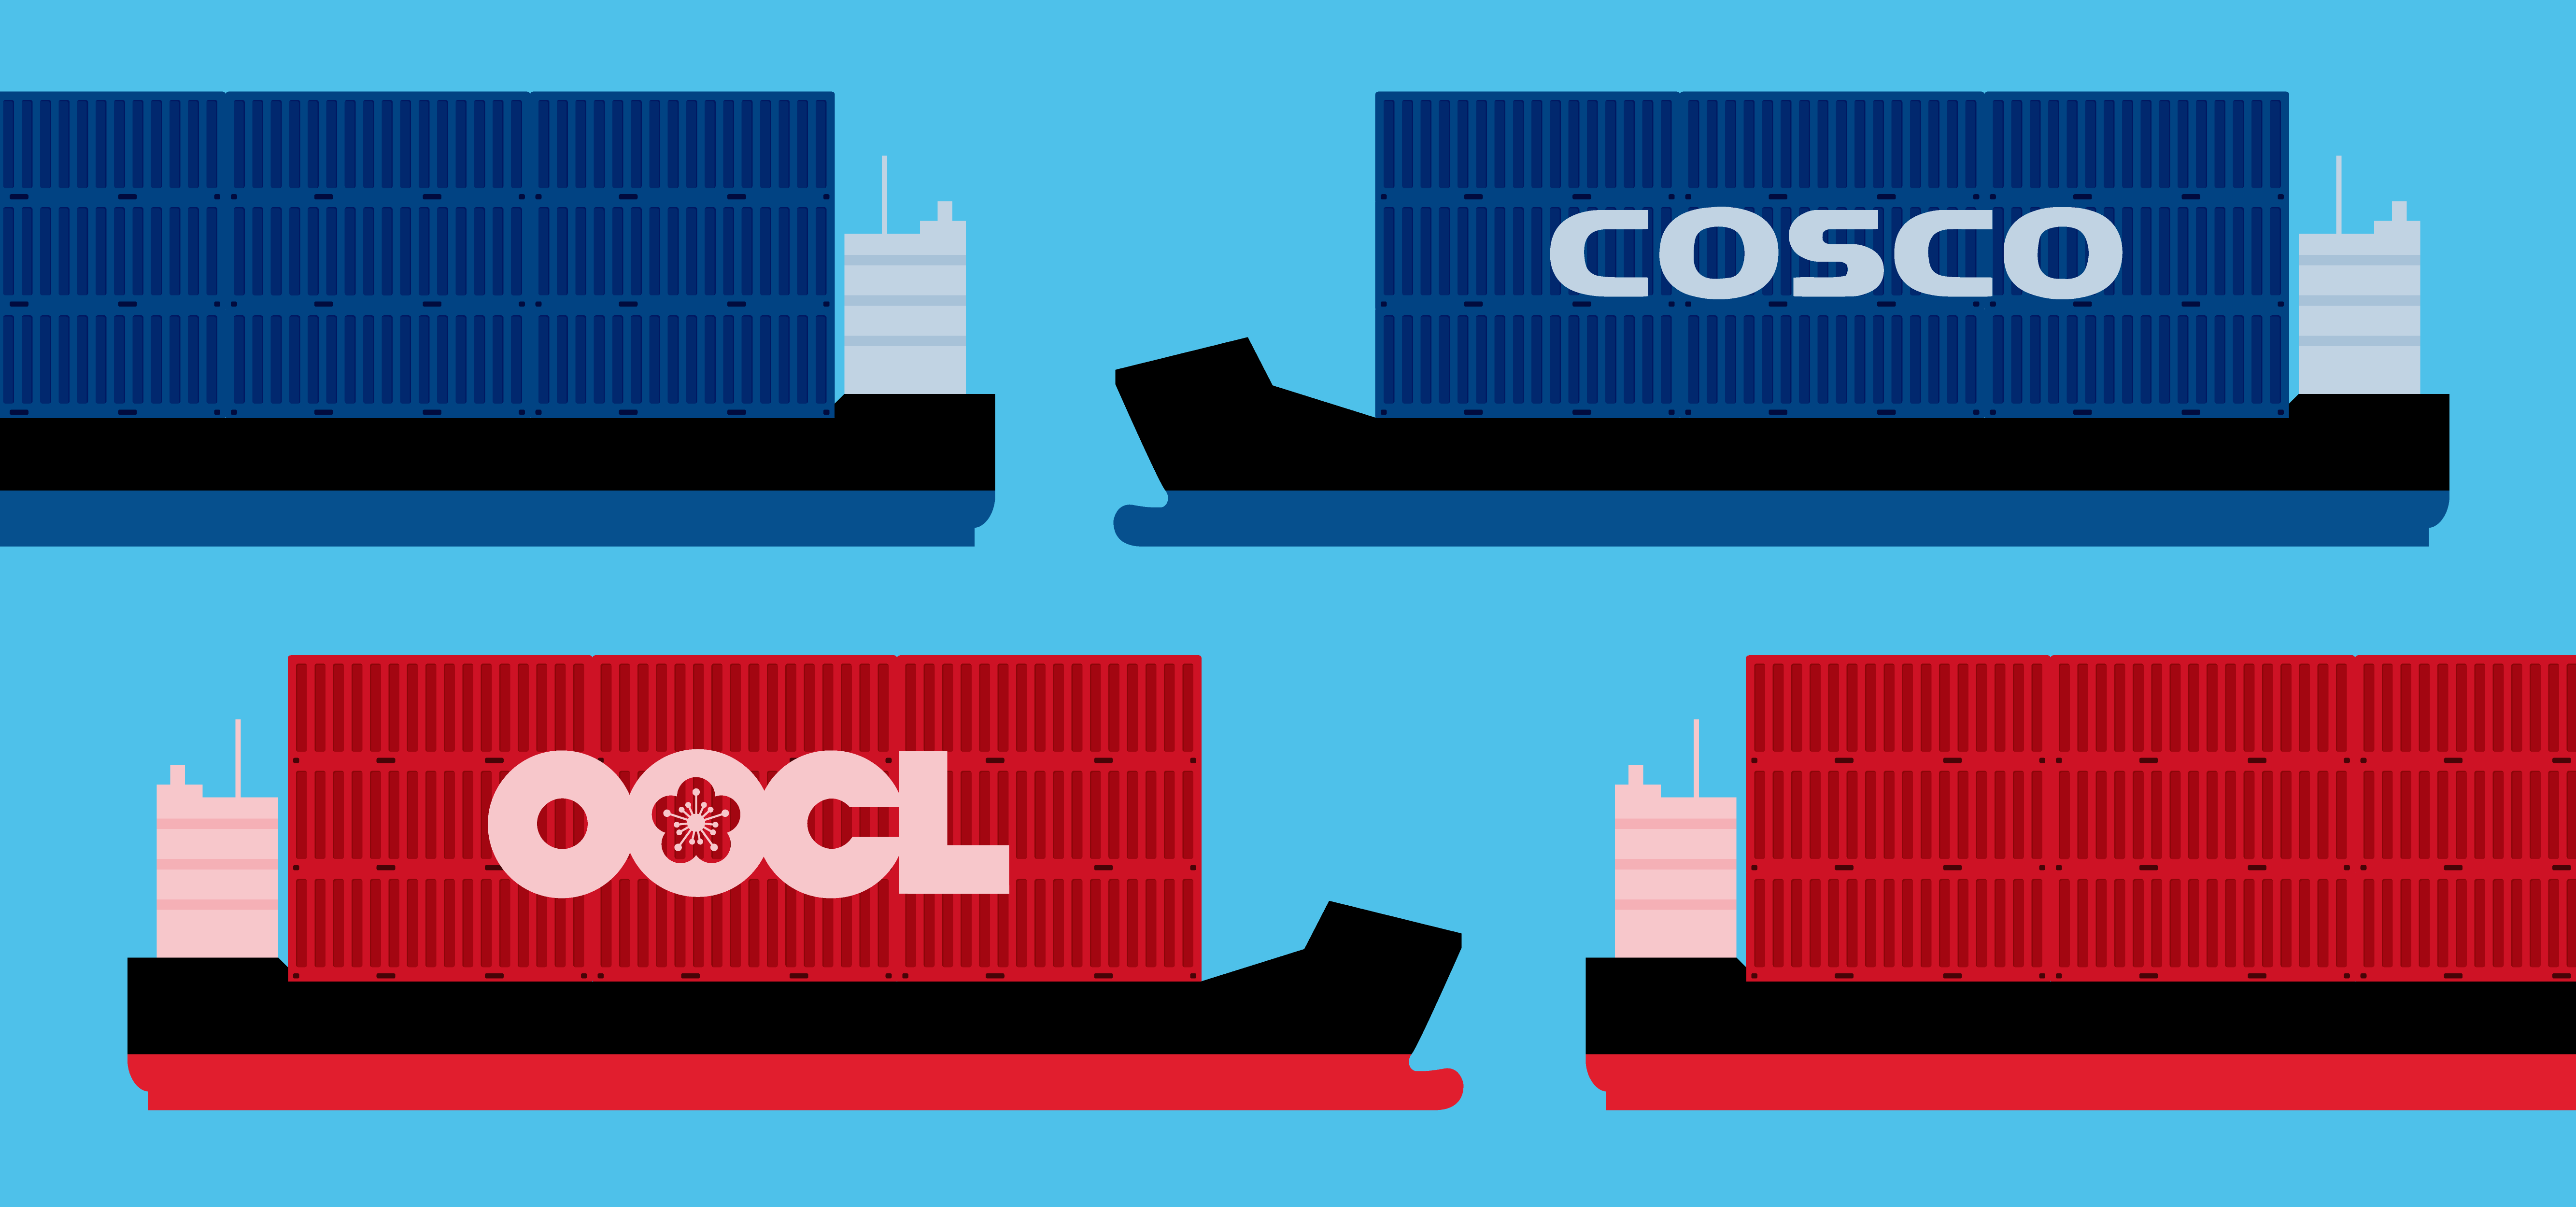 Consolidation Continues with COSCO Acquisition of OOCL